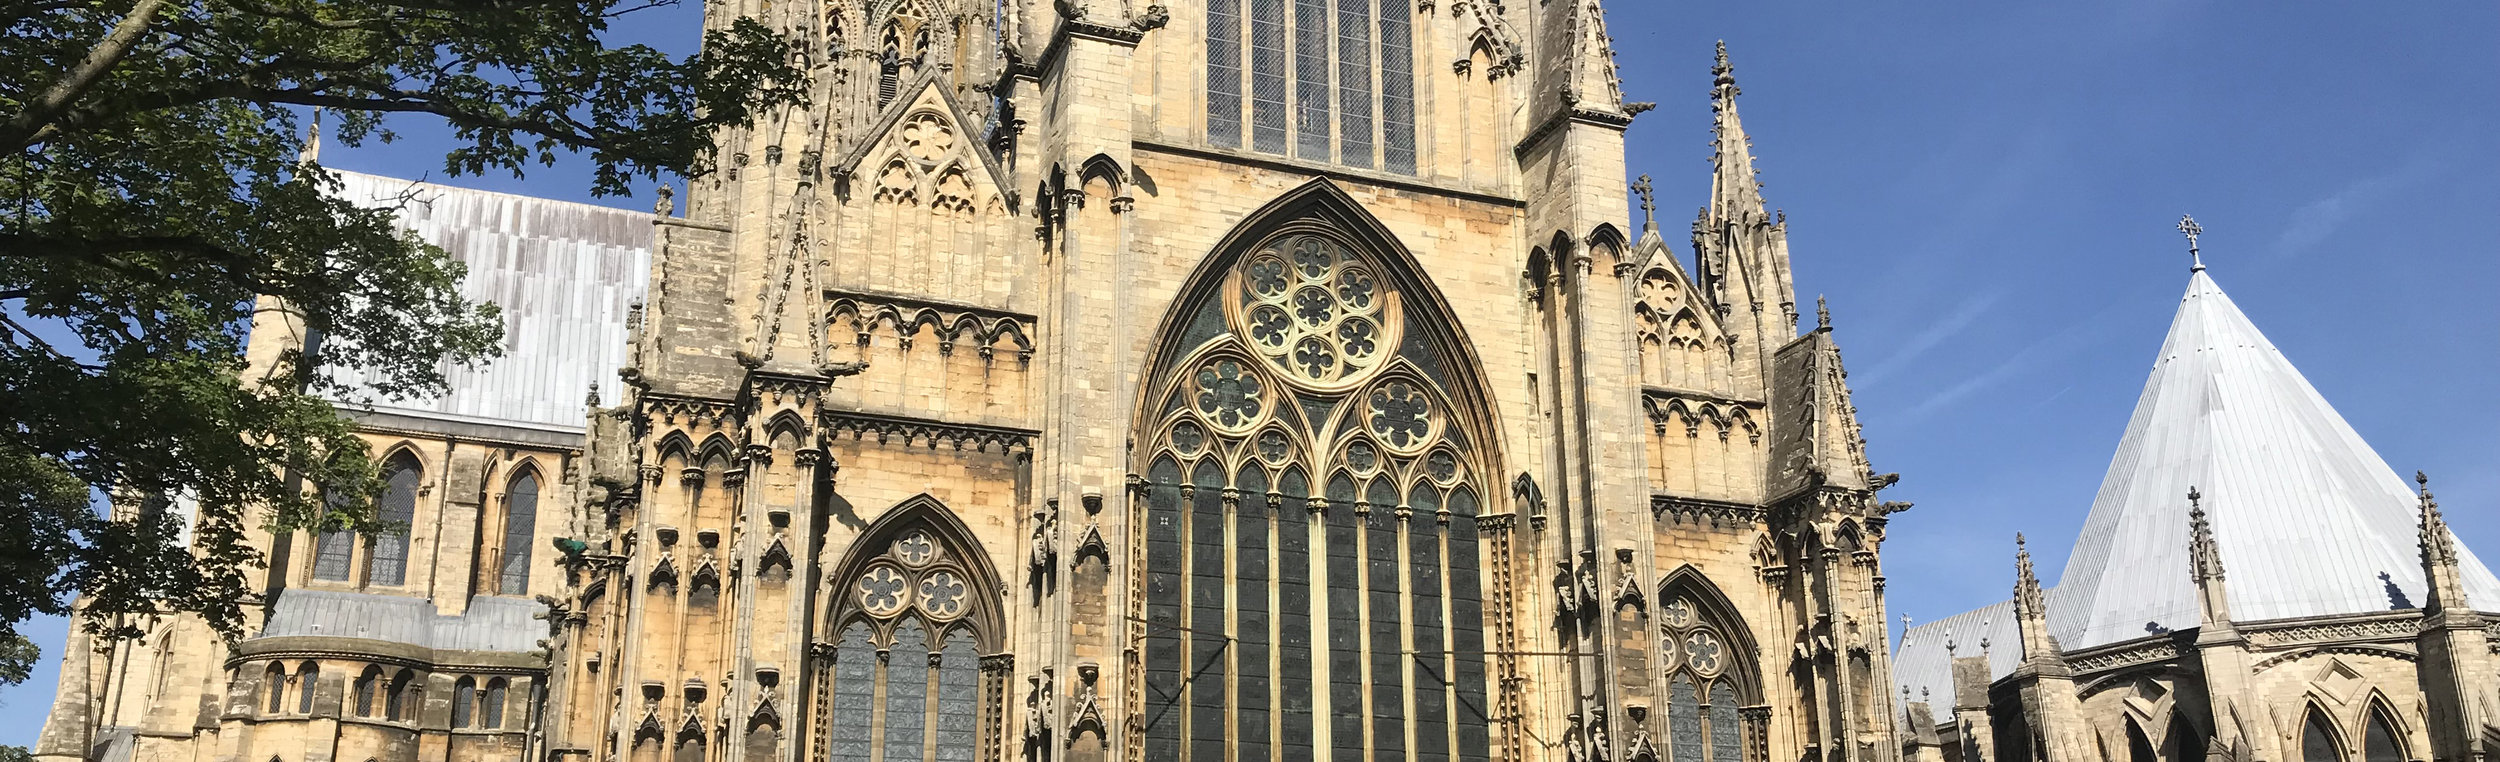 Cathedrals, Castles and Country Houses -